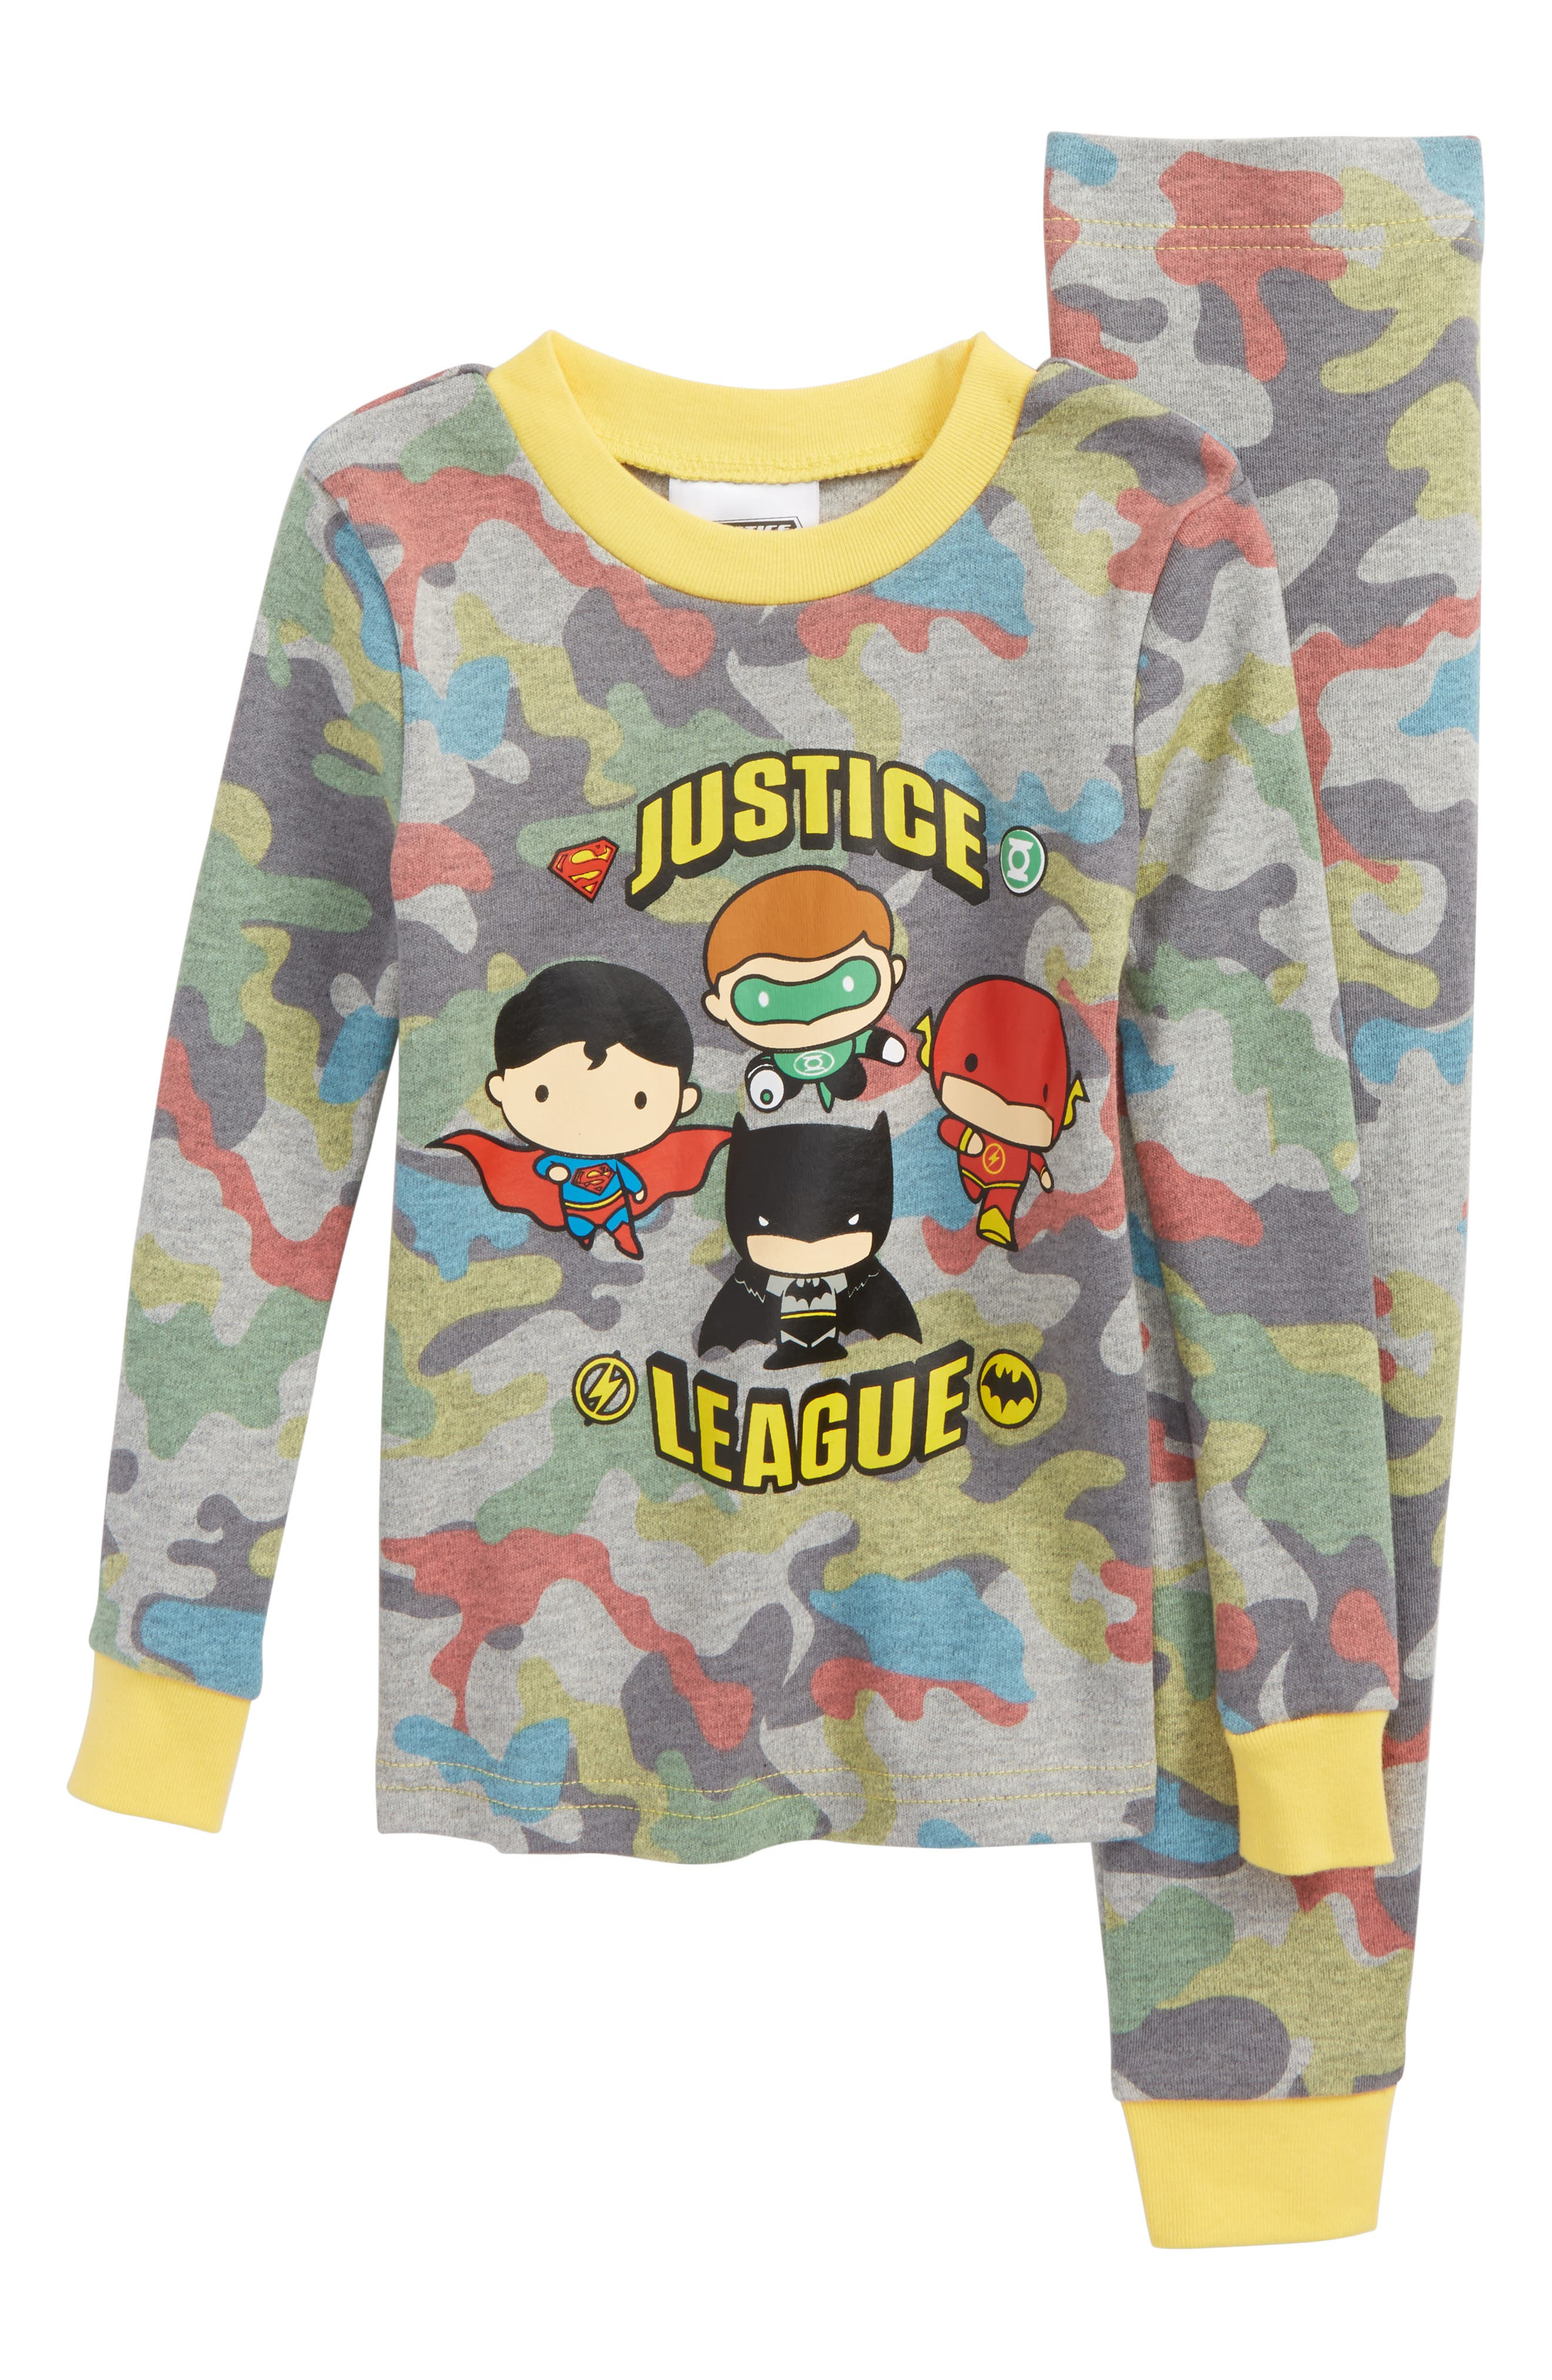 Alternate Image 1 Selected - Warner Brothers™ Justice League™ Fitted Two-Piece Pajamas Set (Toddler Boys, Little Boys & Big Boys)